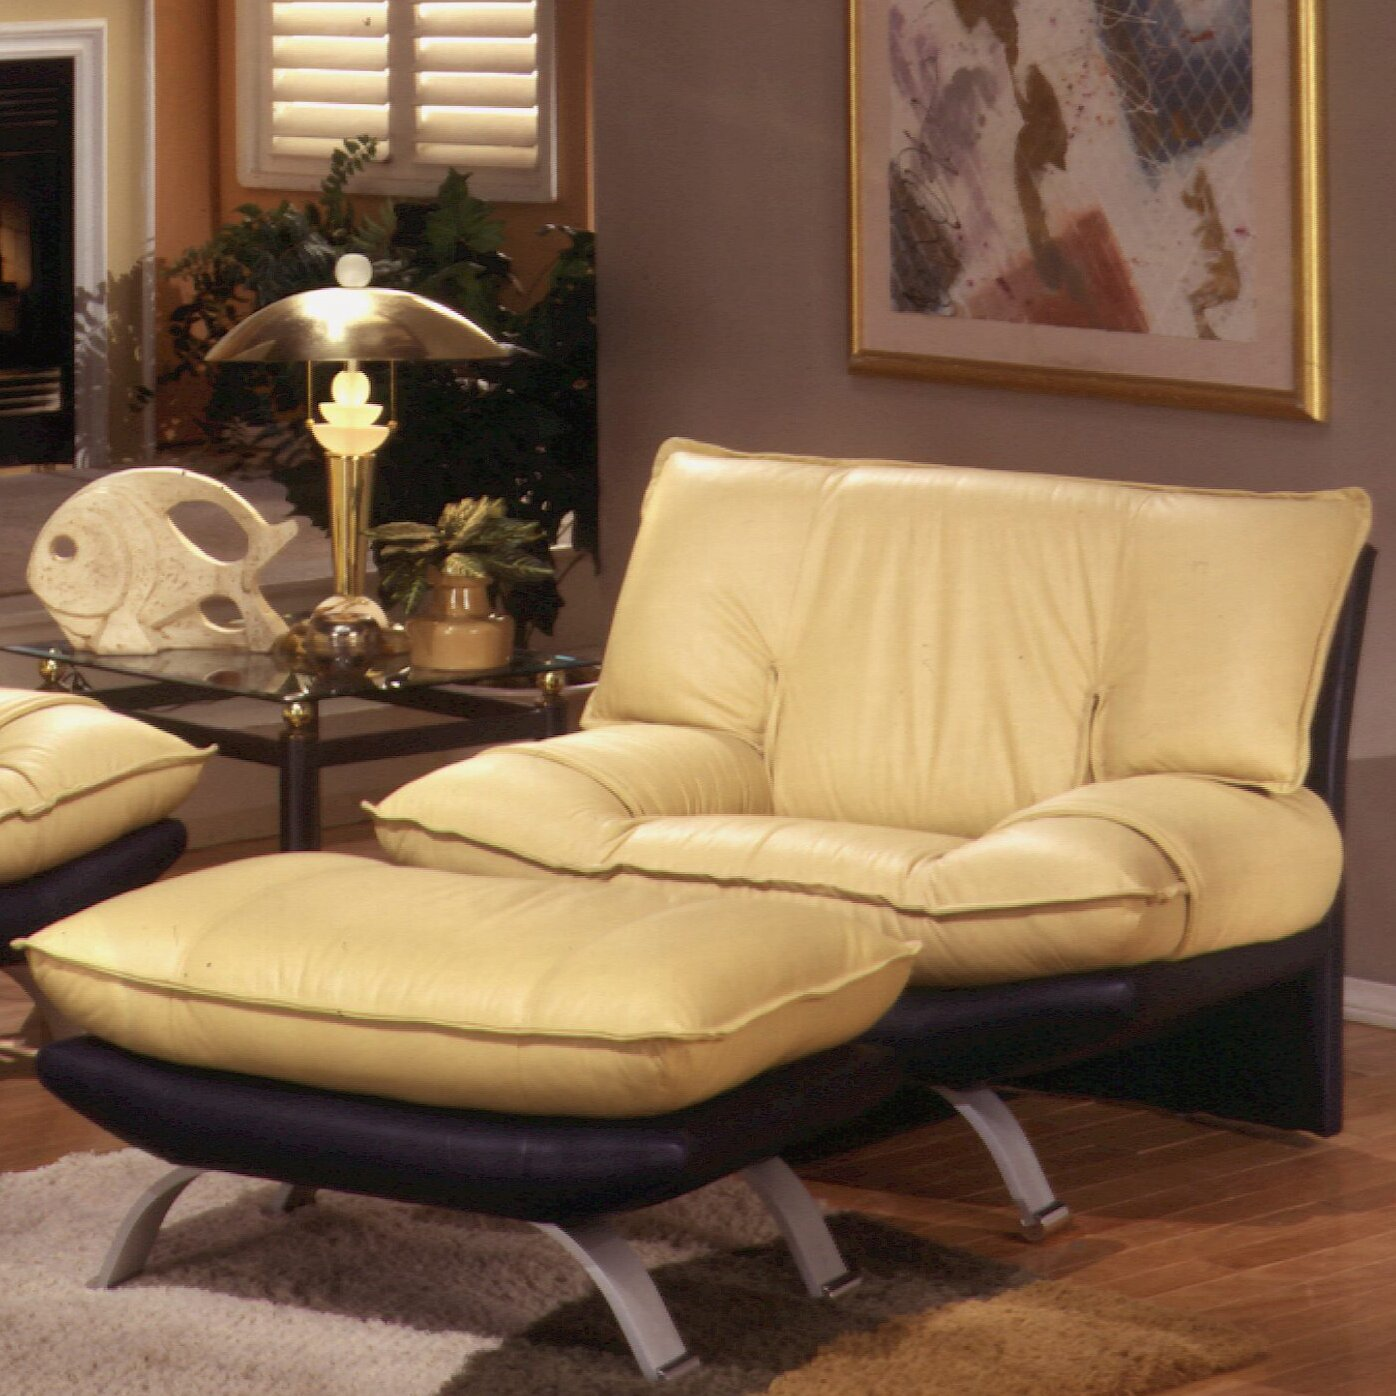 Leather Living Room Sets On Omnia Leather Princeton Leather Living Room Set Reviews Wayfair